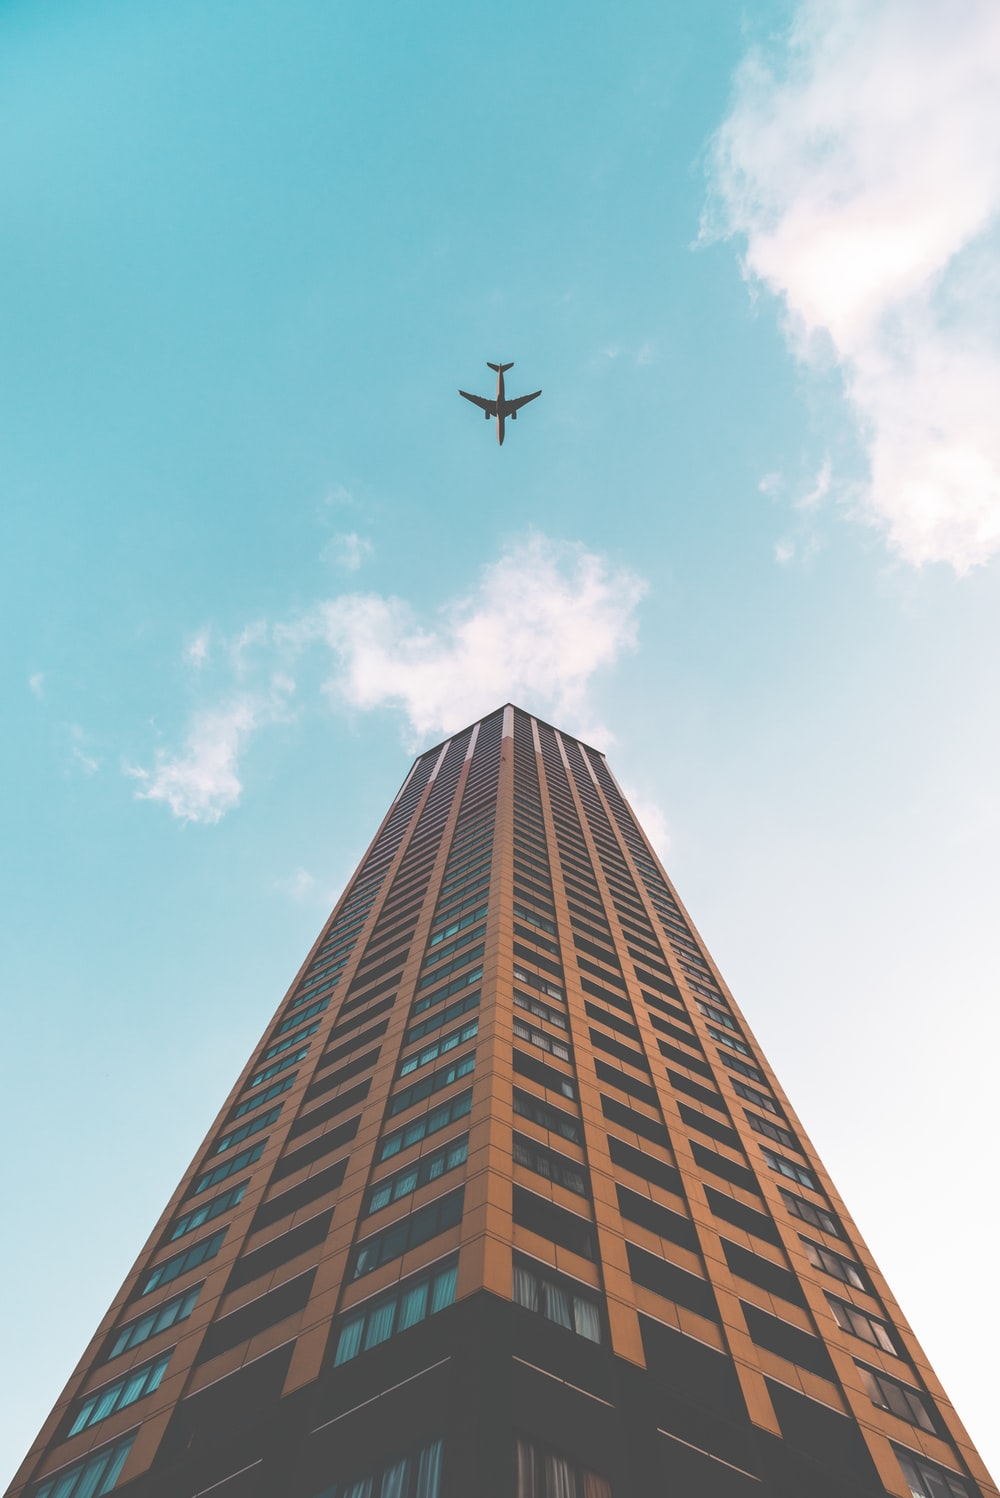 bottom view shot of airplane flying above high rise building 4e7f9c9c2e0a7